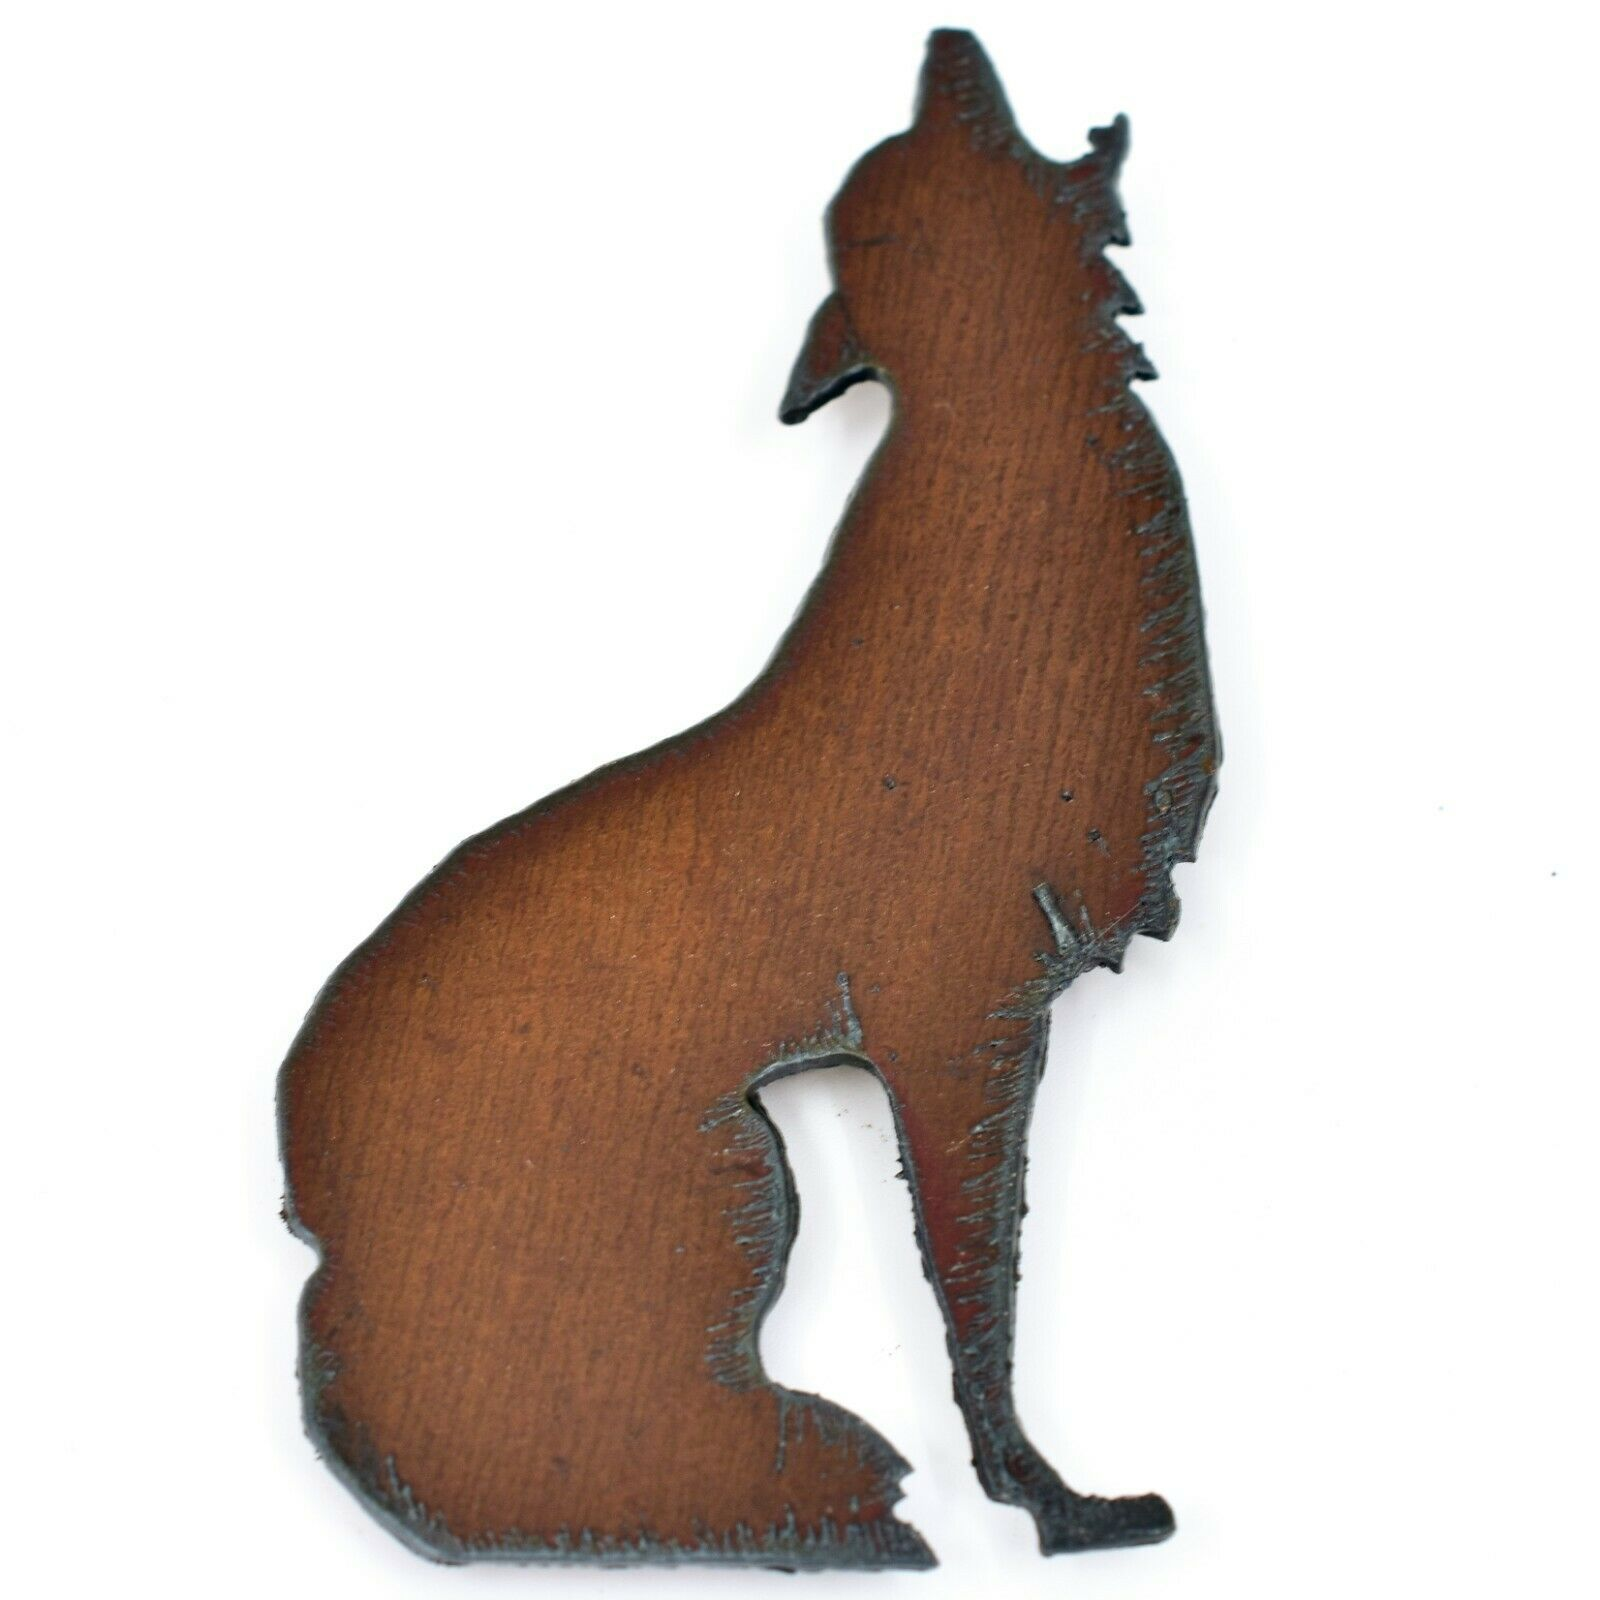 Rustic Rusted Patina Iron Metal Cutout Howling Wolf Coyote Refrigerator Magnet